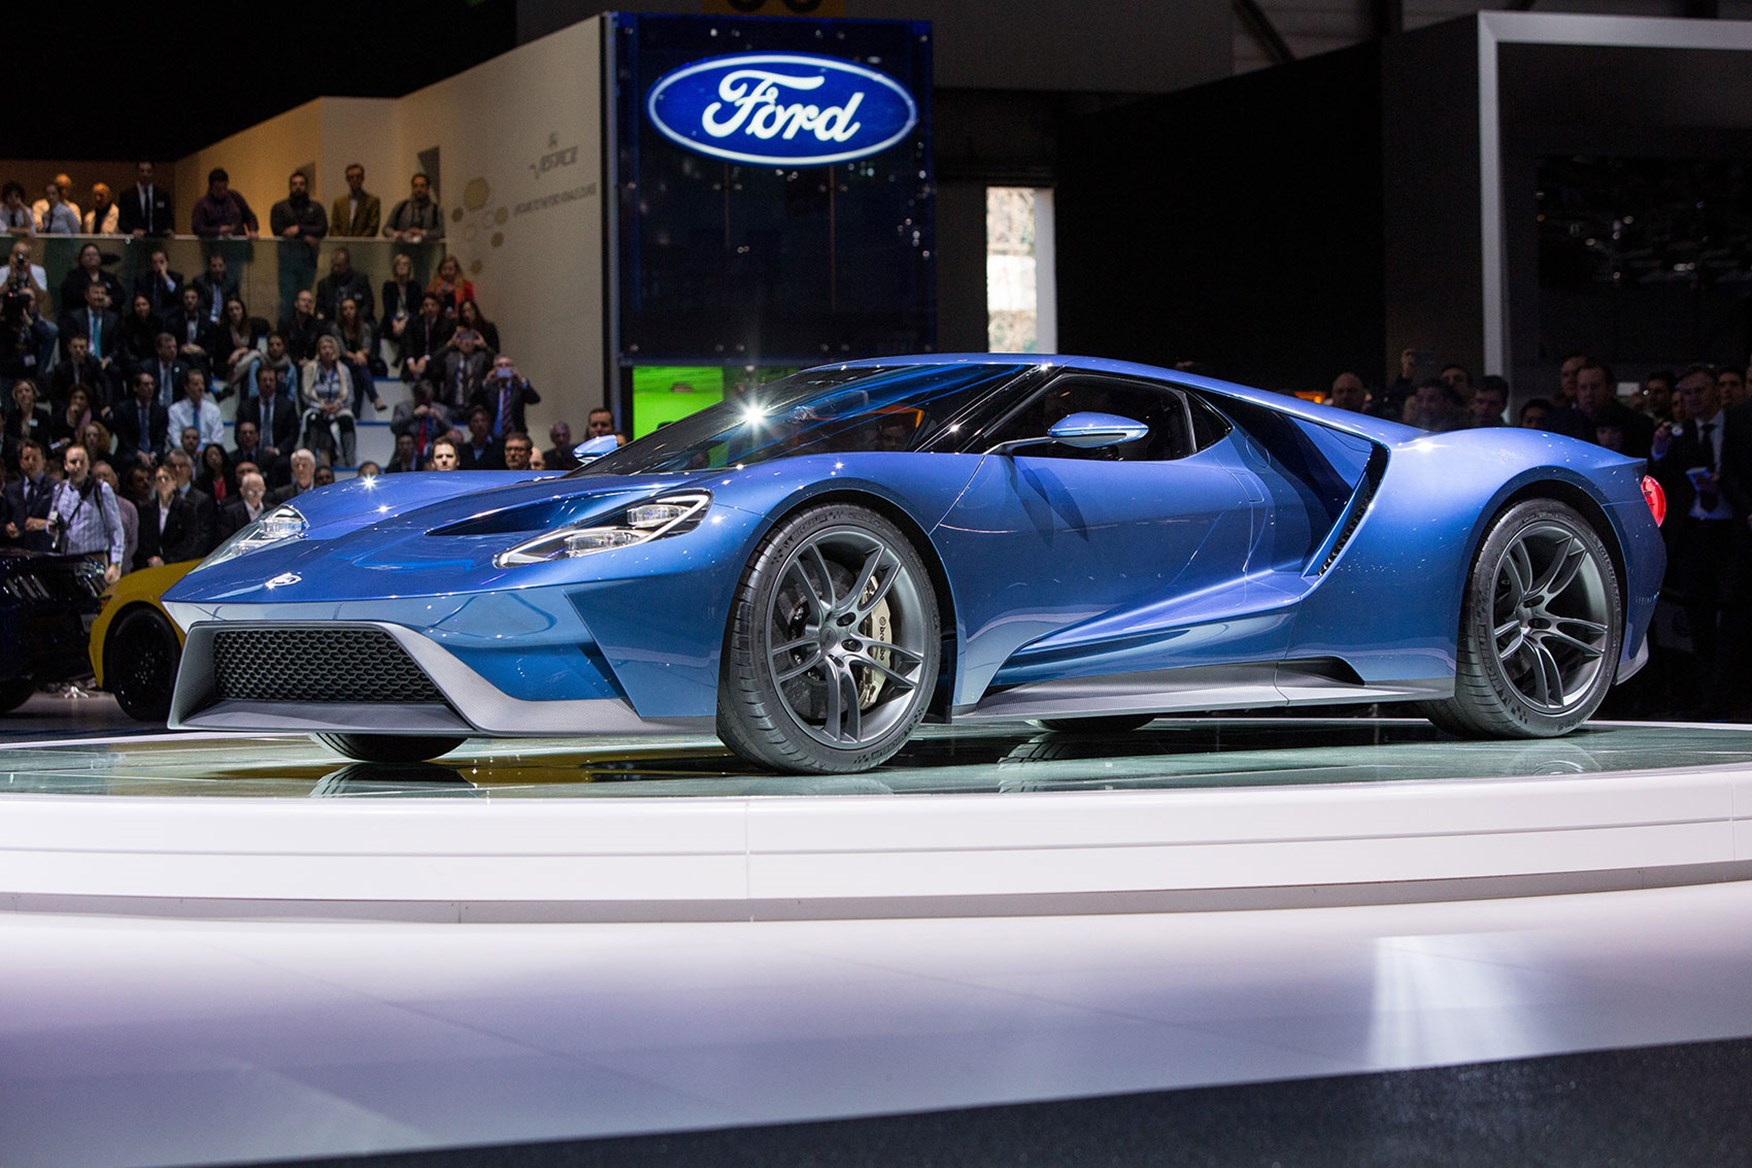 ... New Ford GT next stop GT racing? & Fordu0027s back on track! Blue Oval takes GT racer to Le Mans by CAR ... markmcfarlin.com